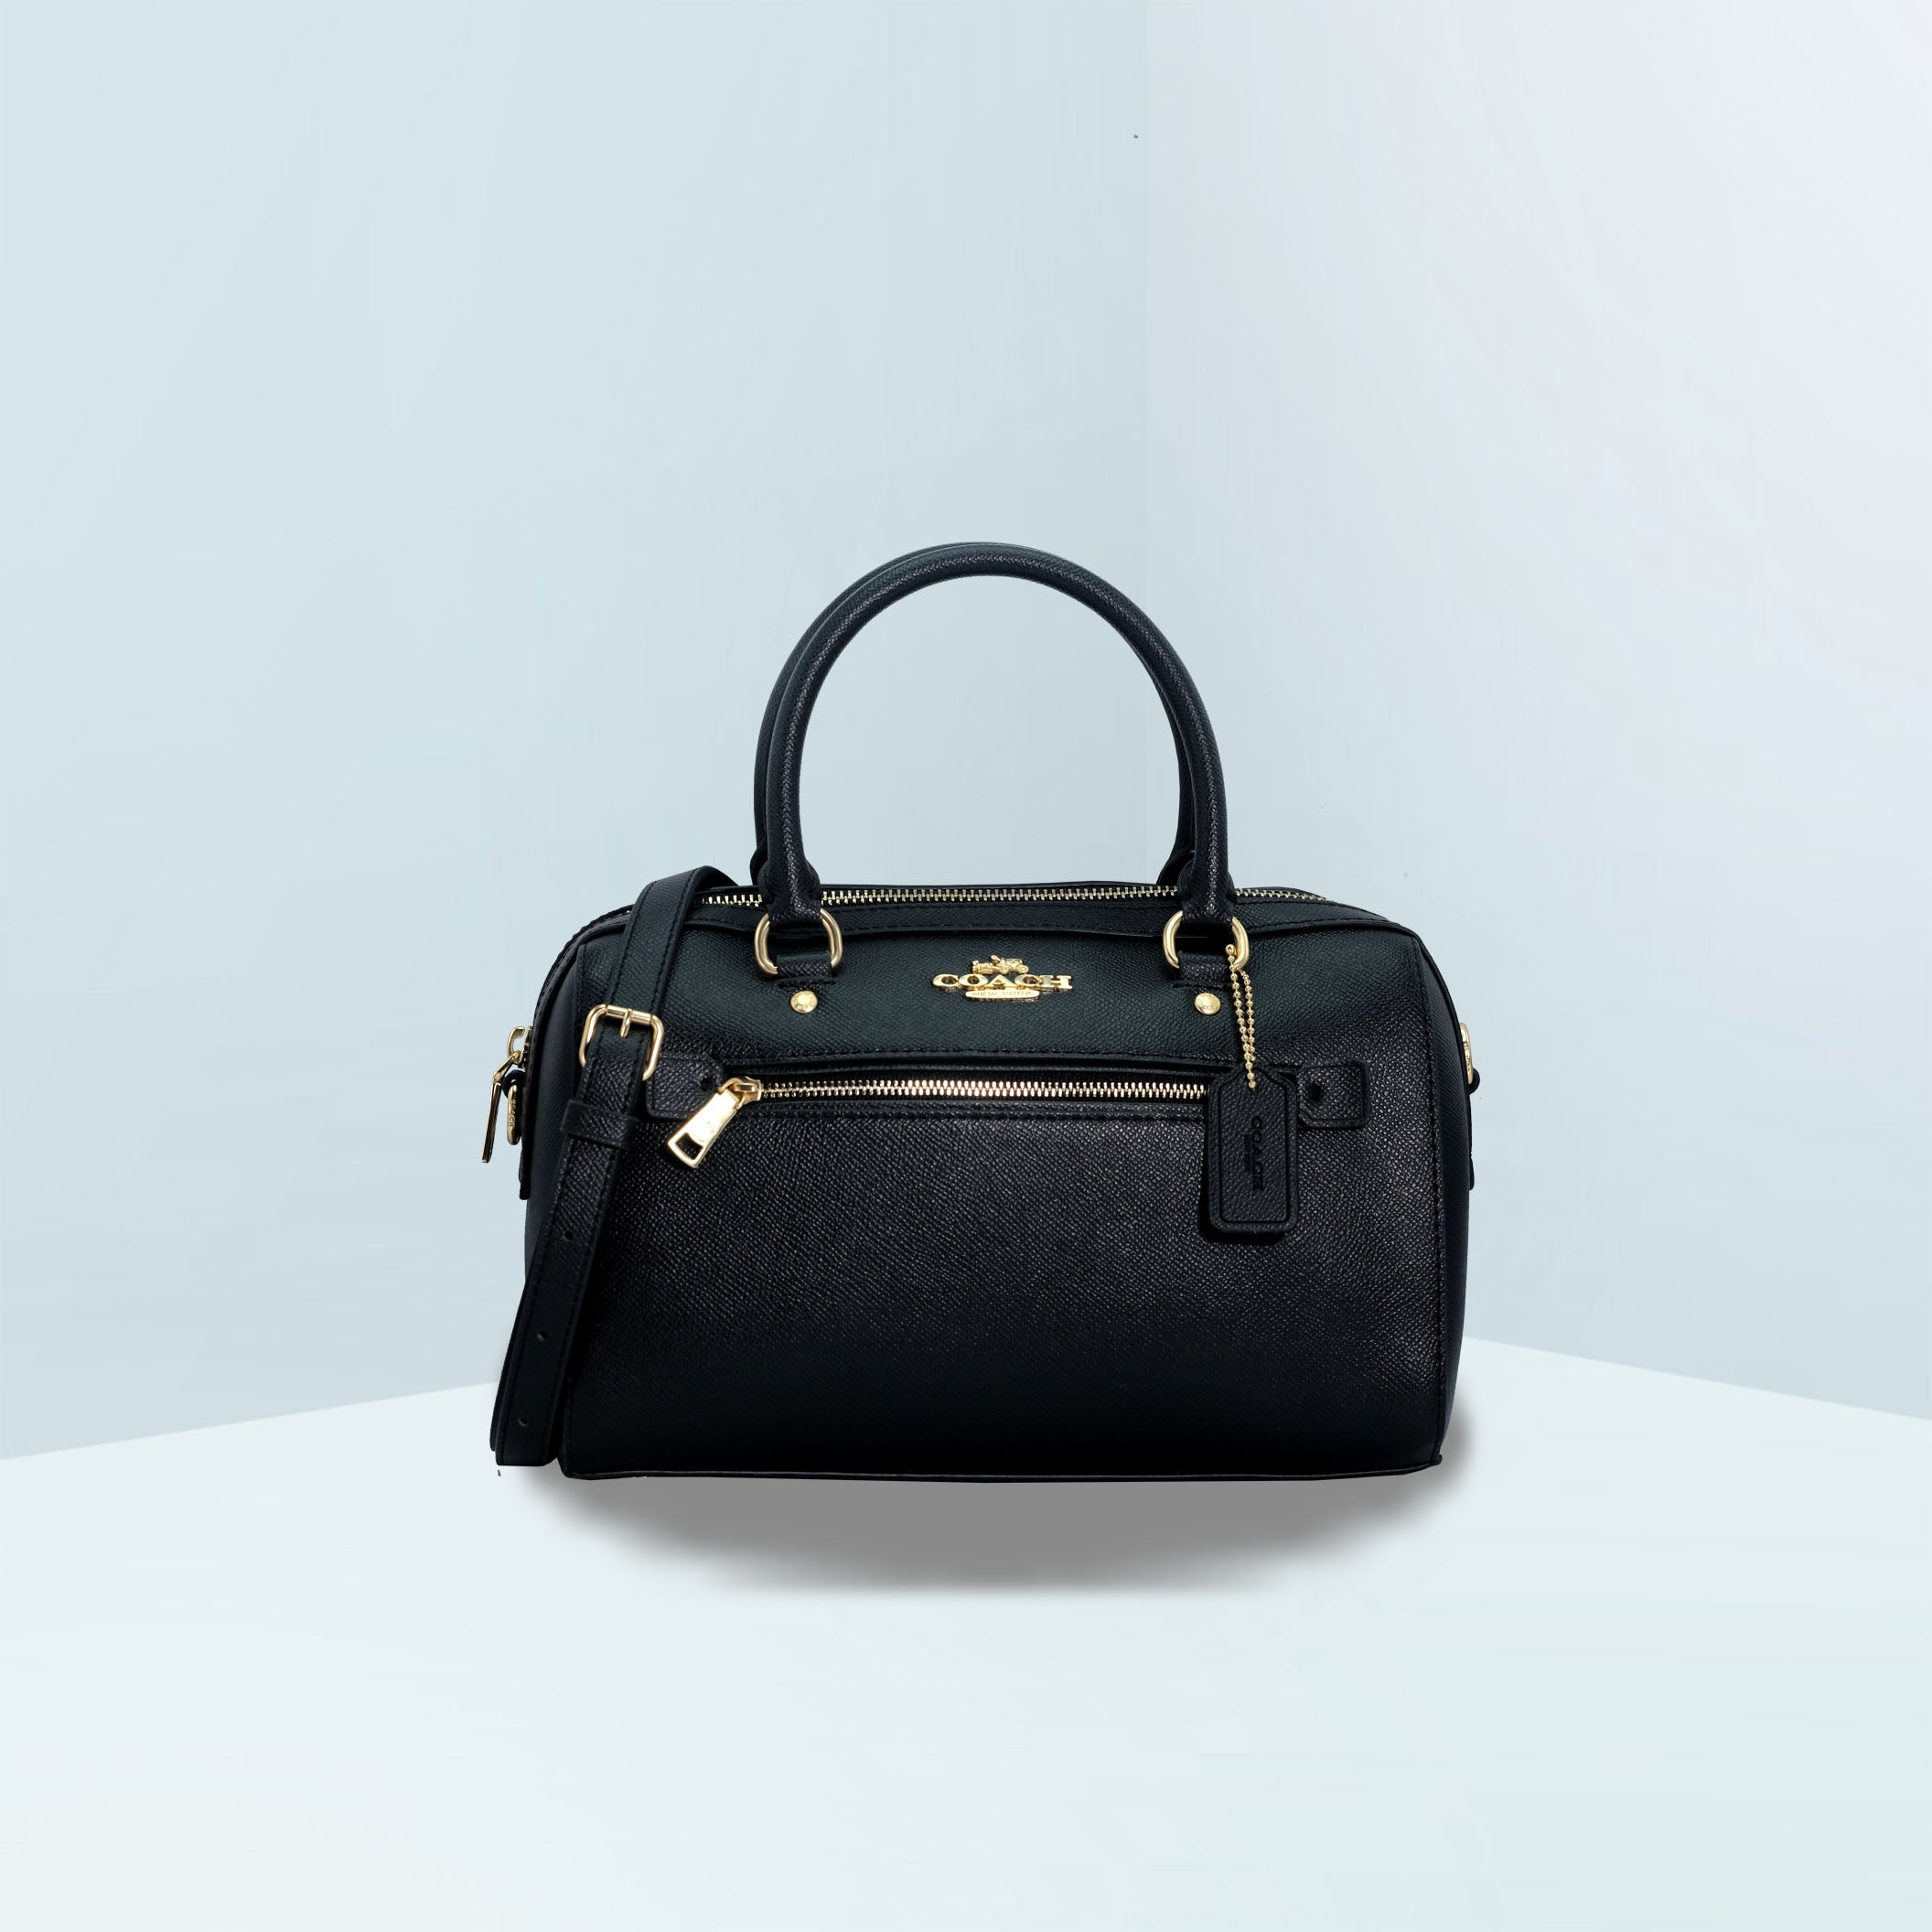 Rowan Leather Satchel